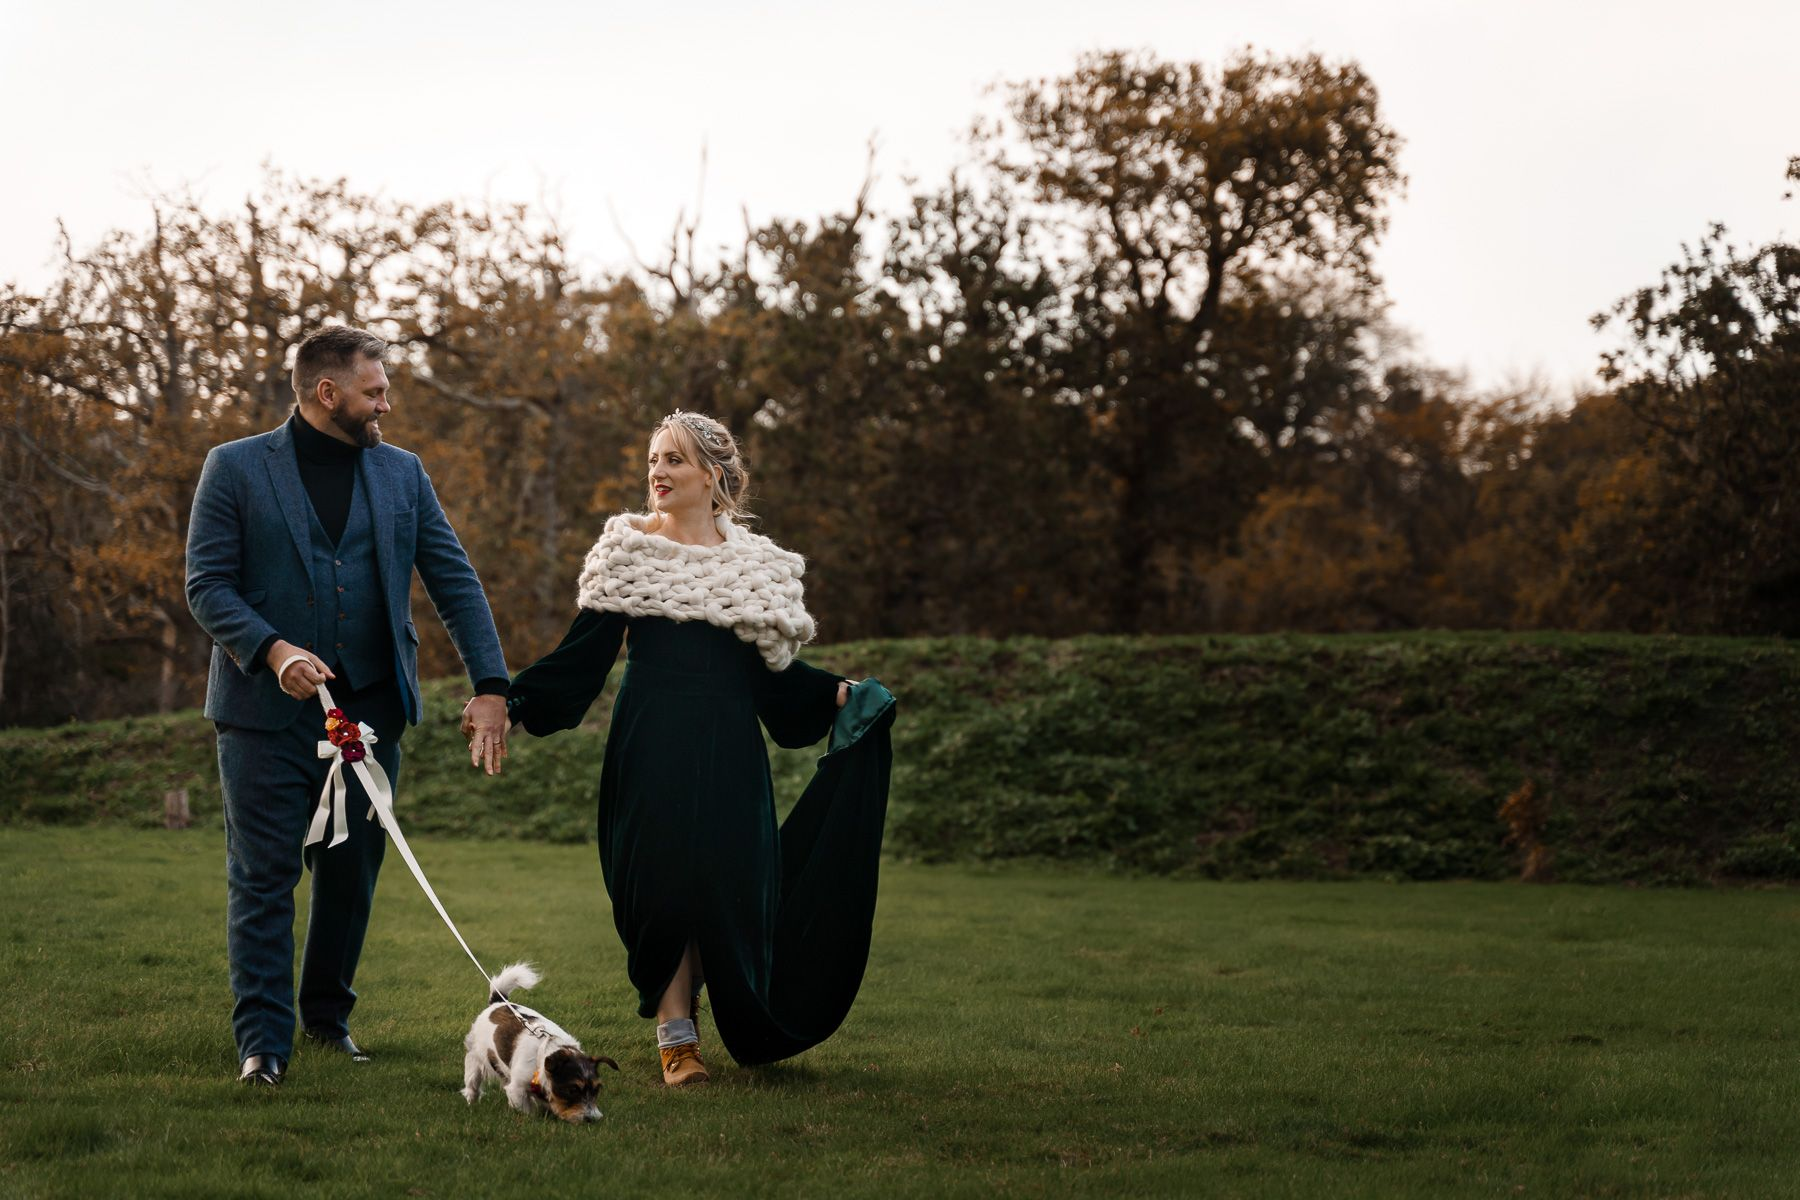 dog friendly wedding- dogs at weddings- katherine and her camera- dog wedding accessories-unconventional wedding- wedding planning advice- pets at weddings